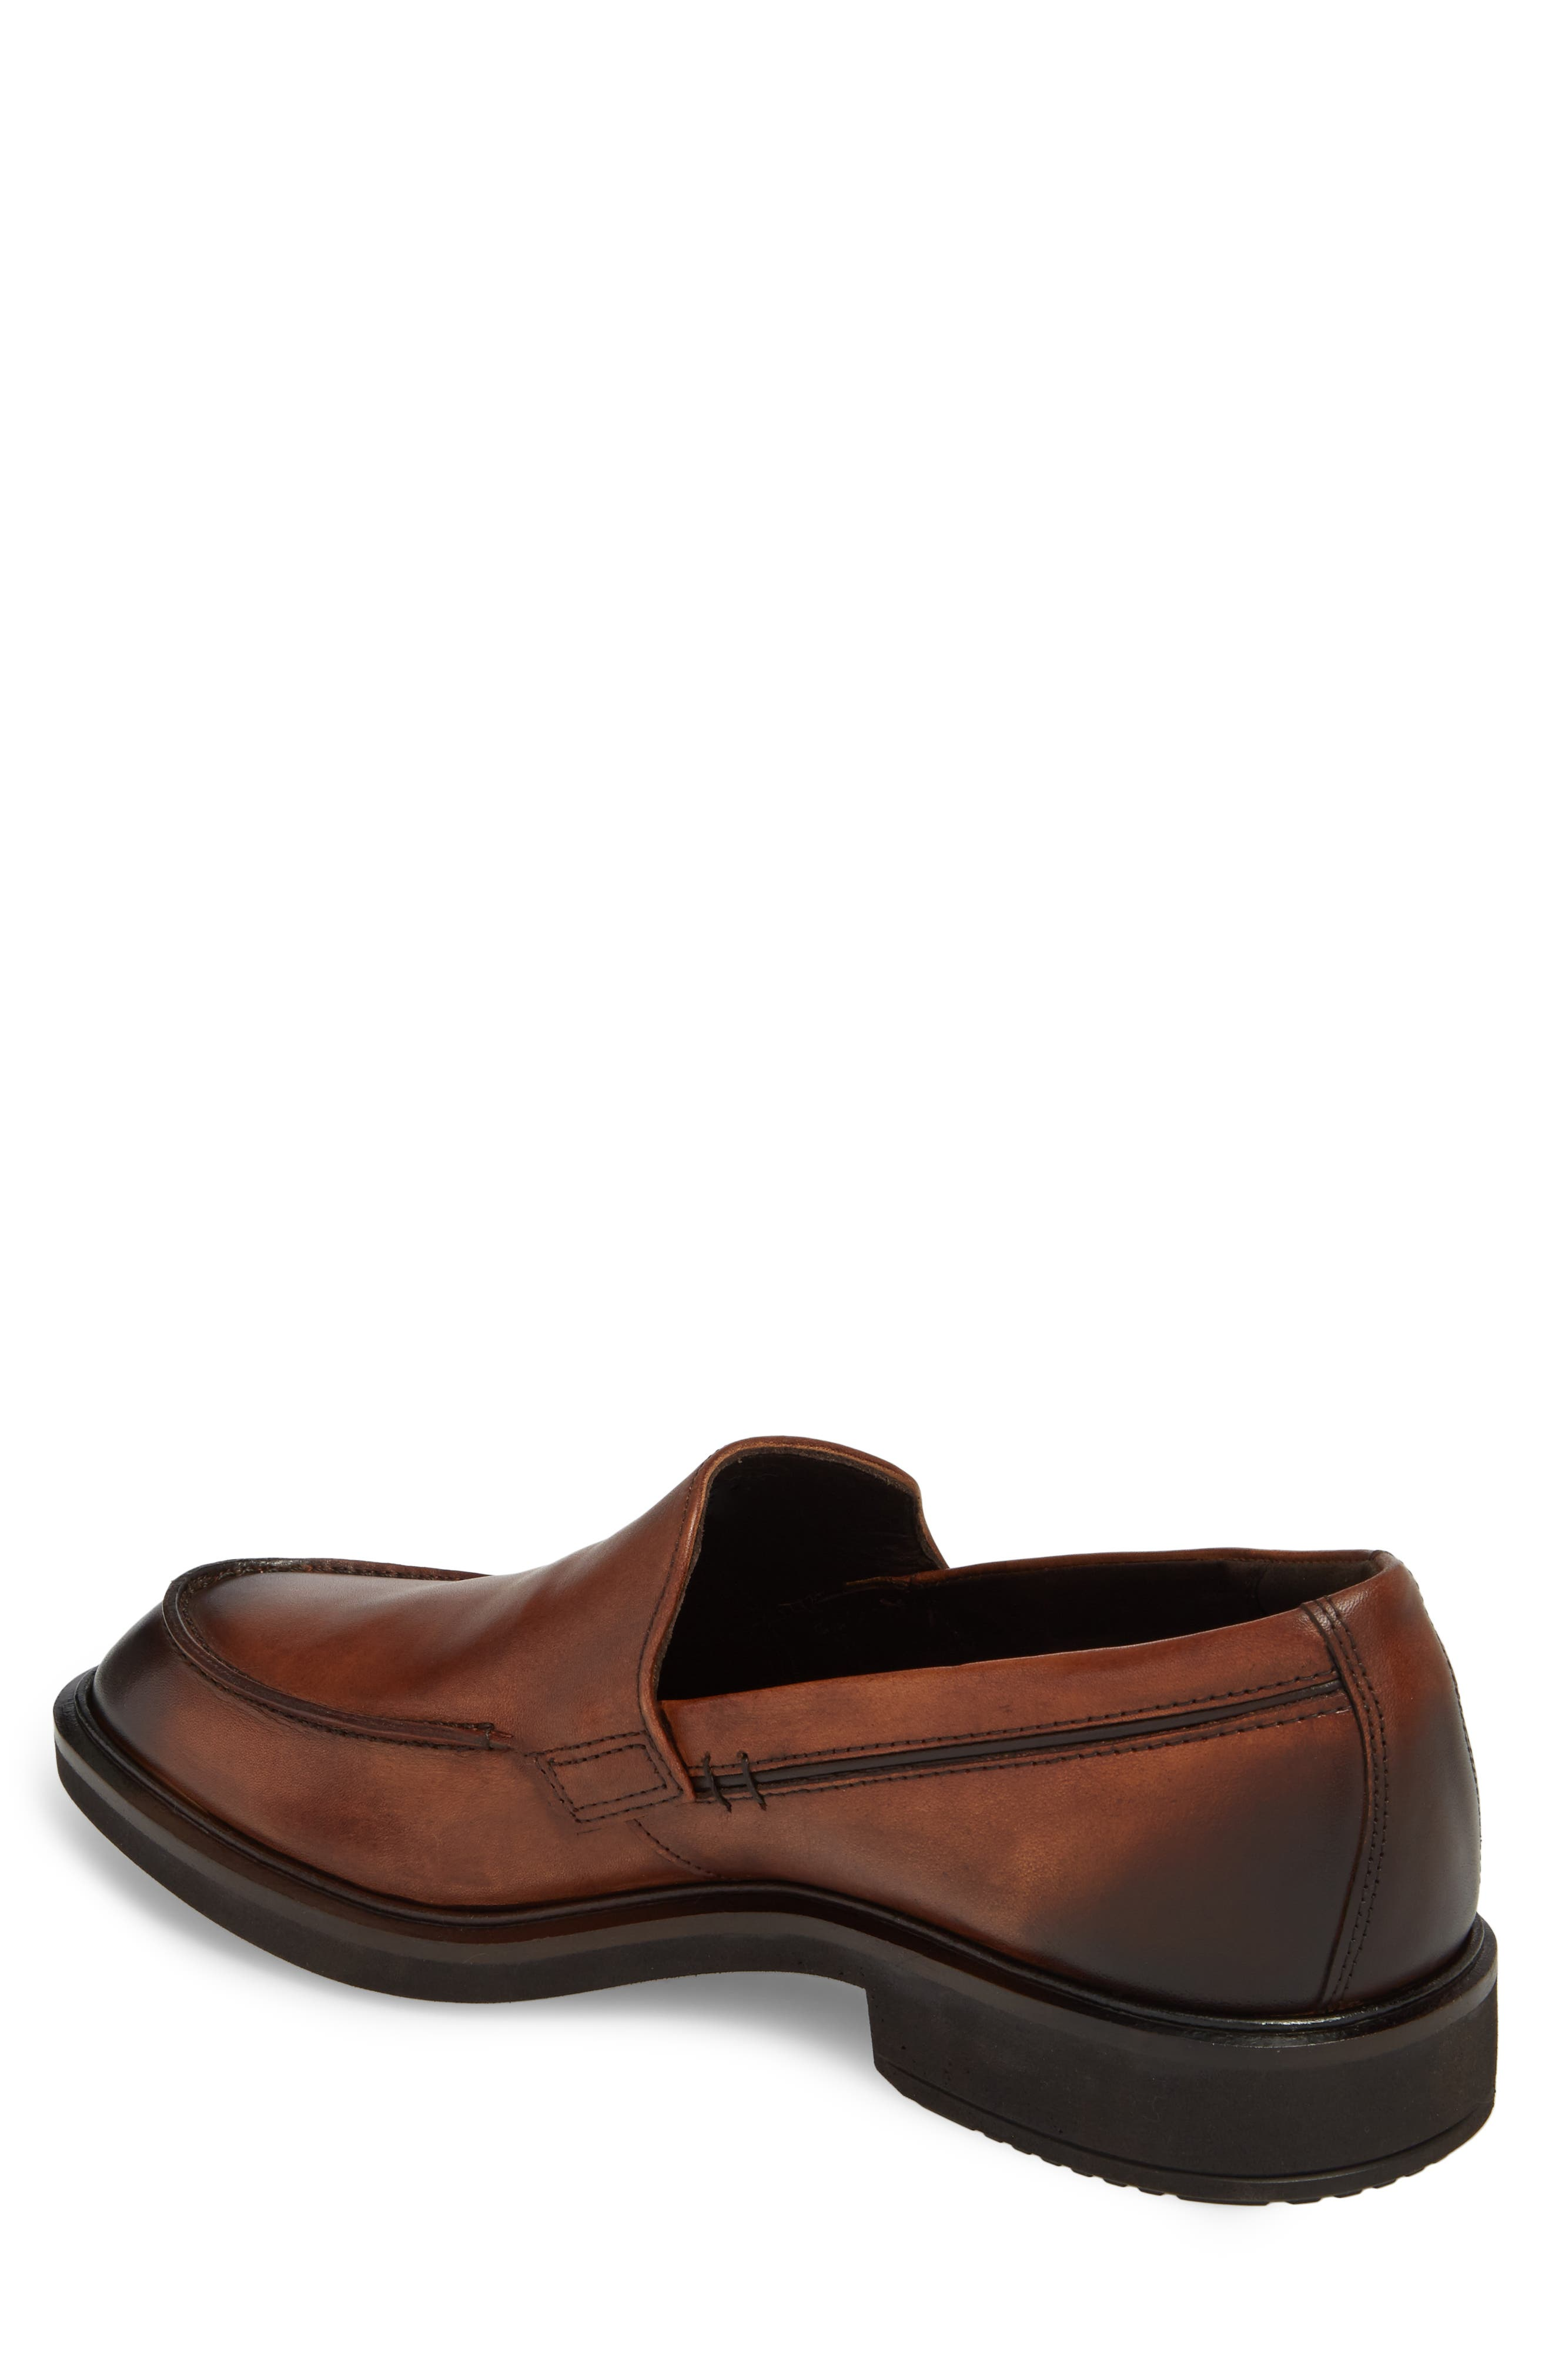 Alternate Image 2  - ECCO Vitrus II Apron Toe Loafer (Men)